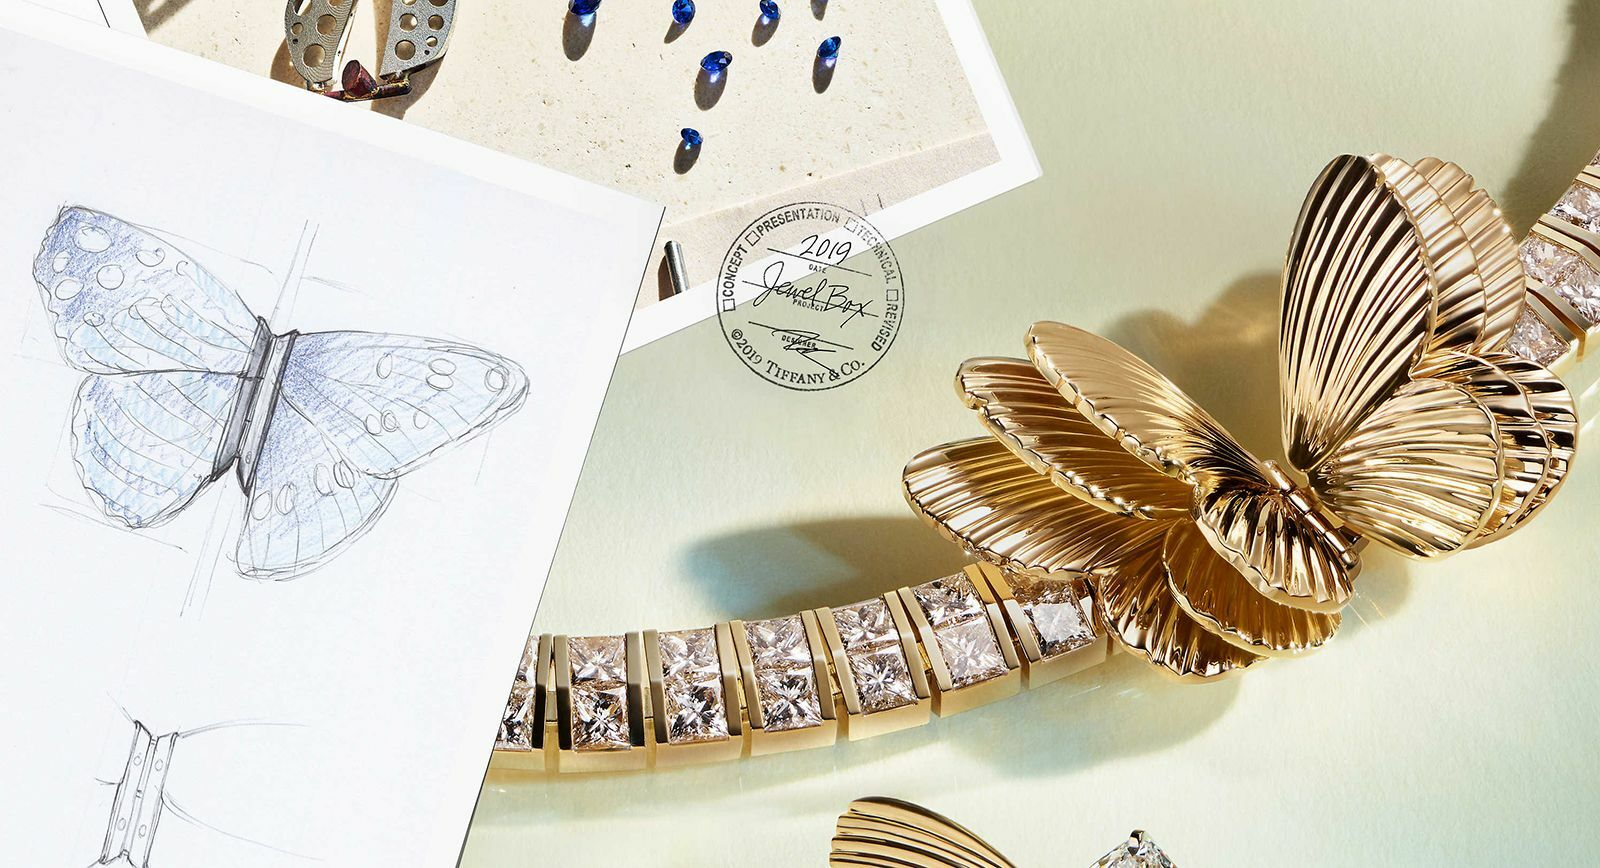 Tiffany&Co. Blue Book 2019 high jewellery collection